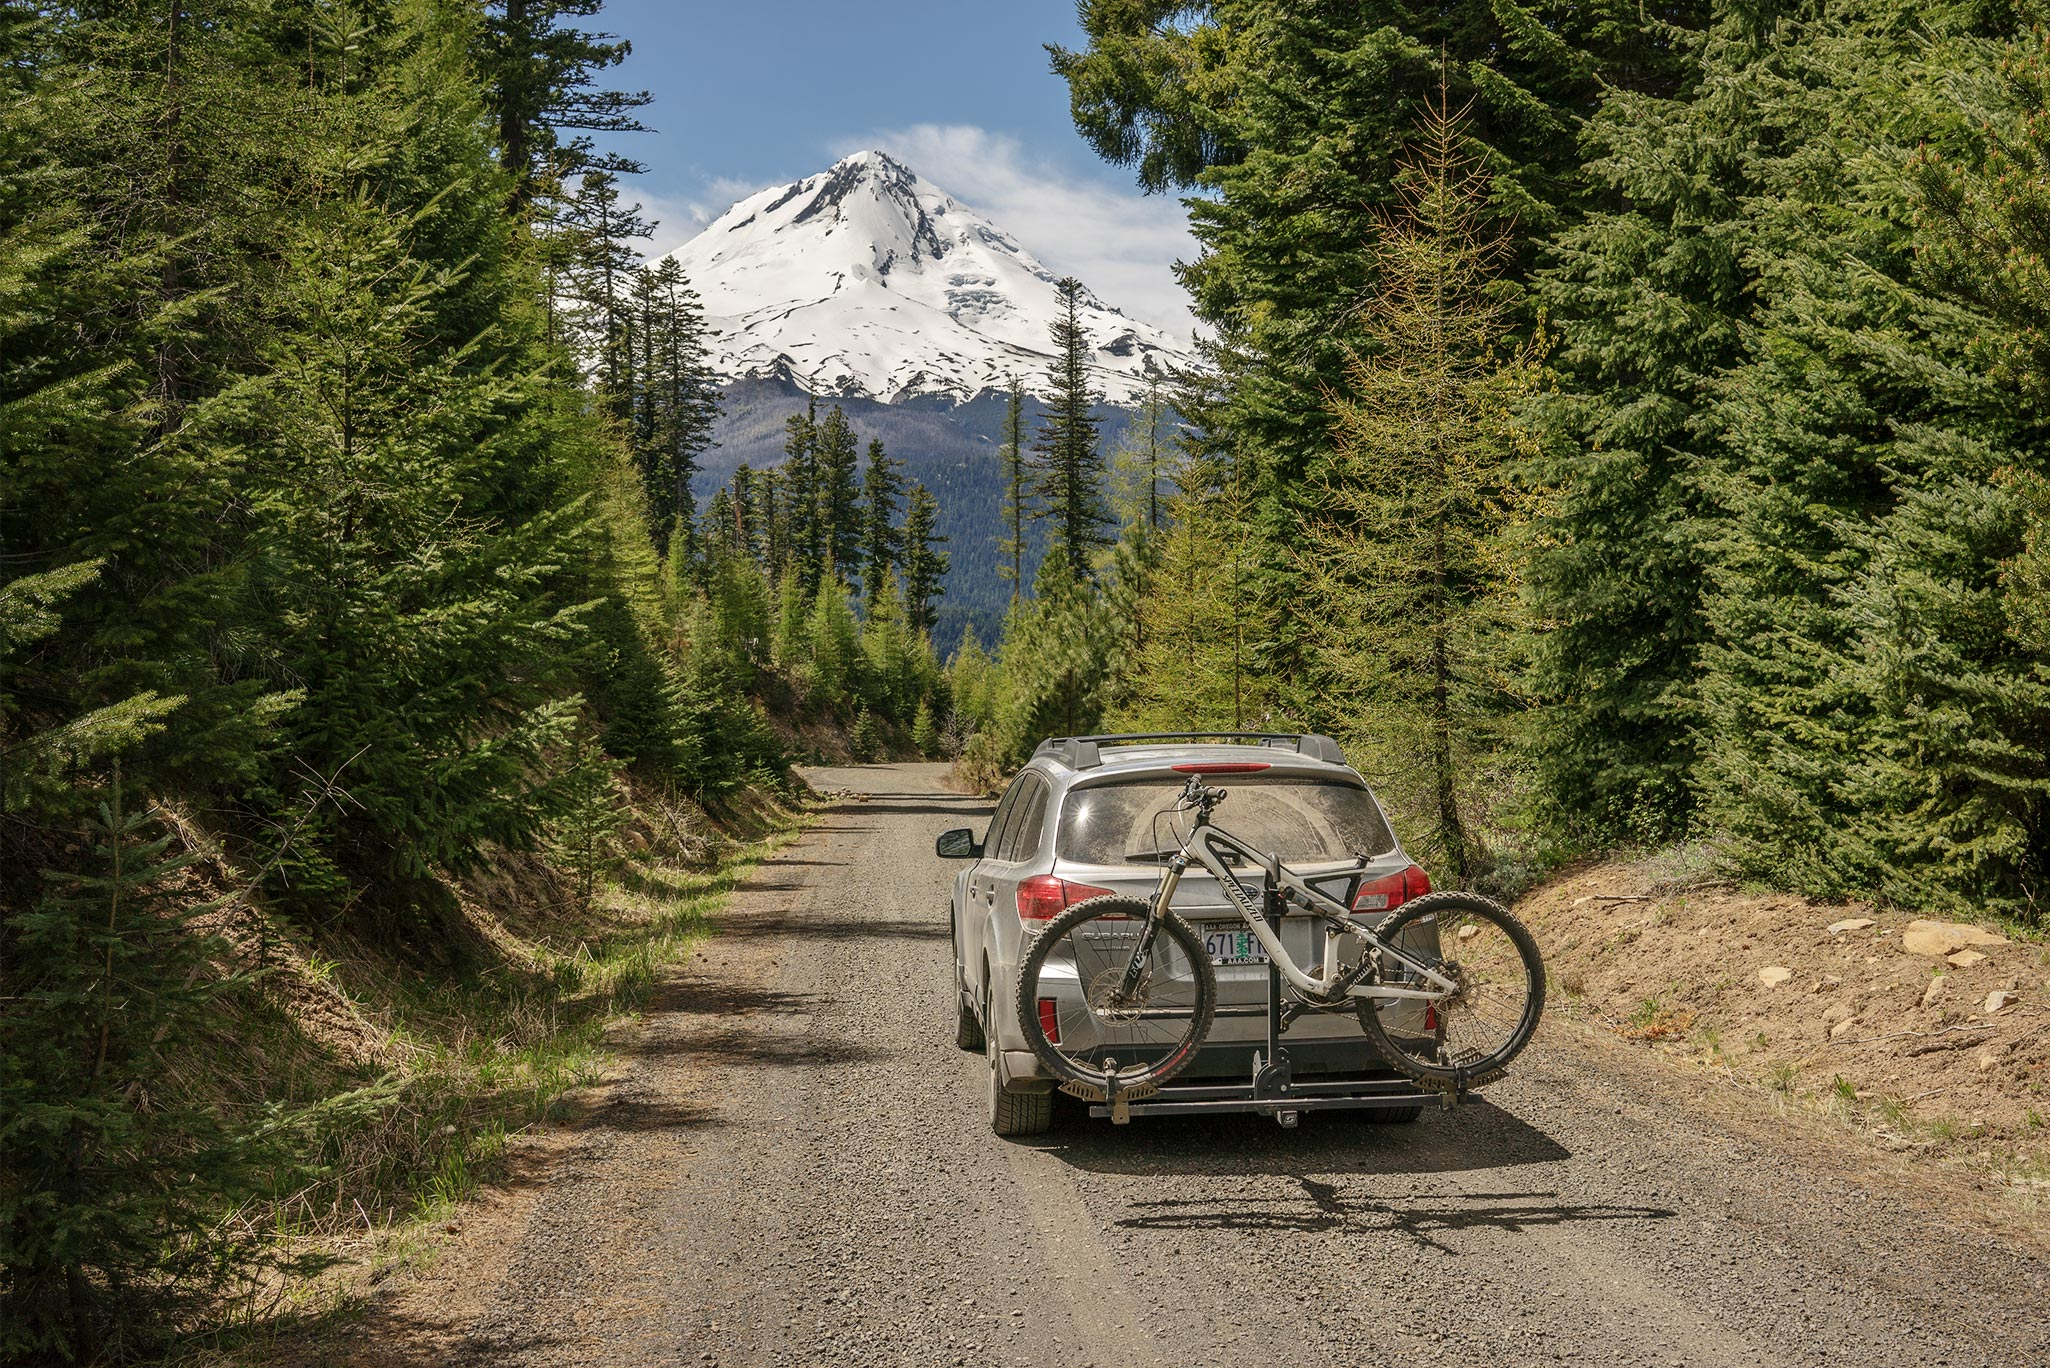 Road trip through Mt Hood National Forest